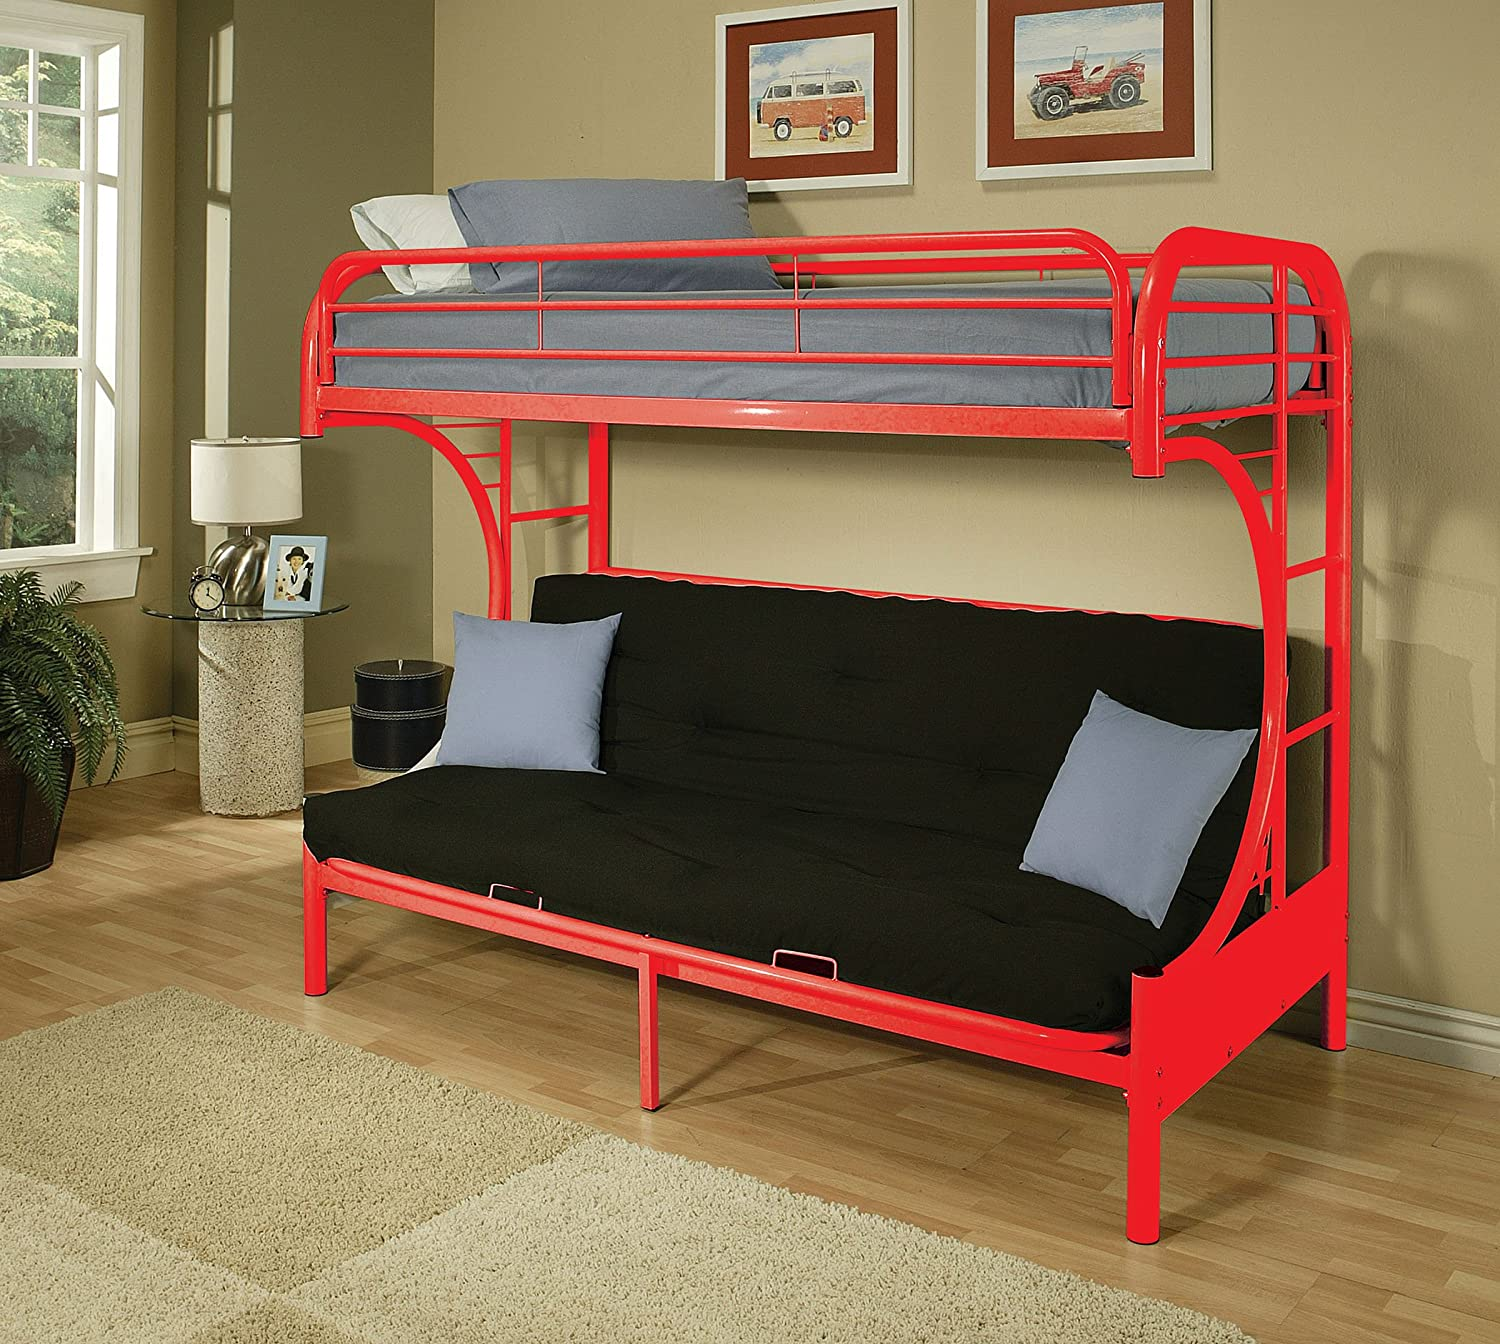 ACME 02091A Eclipse Twin/Full Bunk Bed ACME Furniture